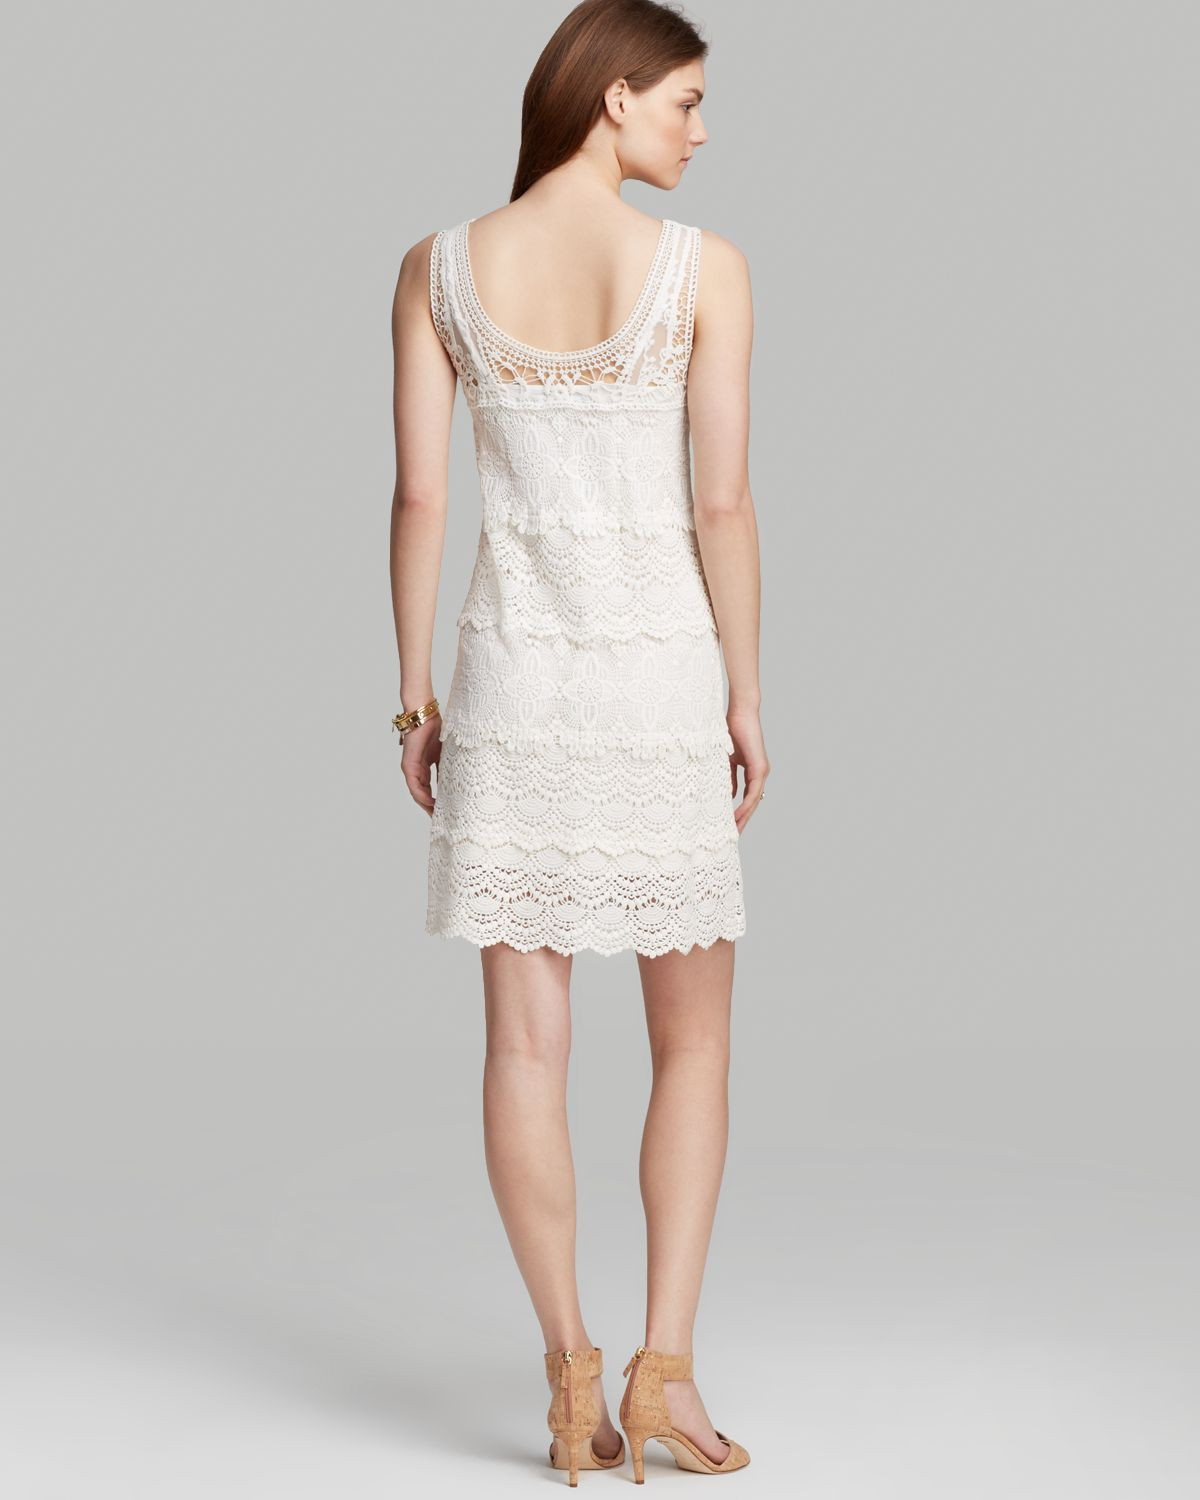 White Crochet Dress Awesome Lyst Adrianna Papell Sleeveless Crochet Dress In White Of Adorable 49 Pics White Crochet Dress